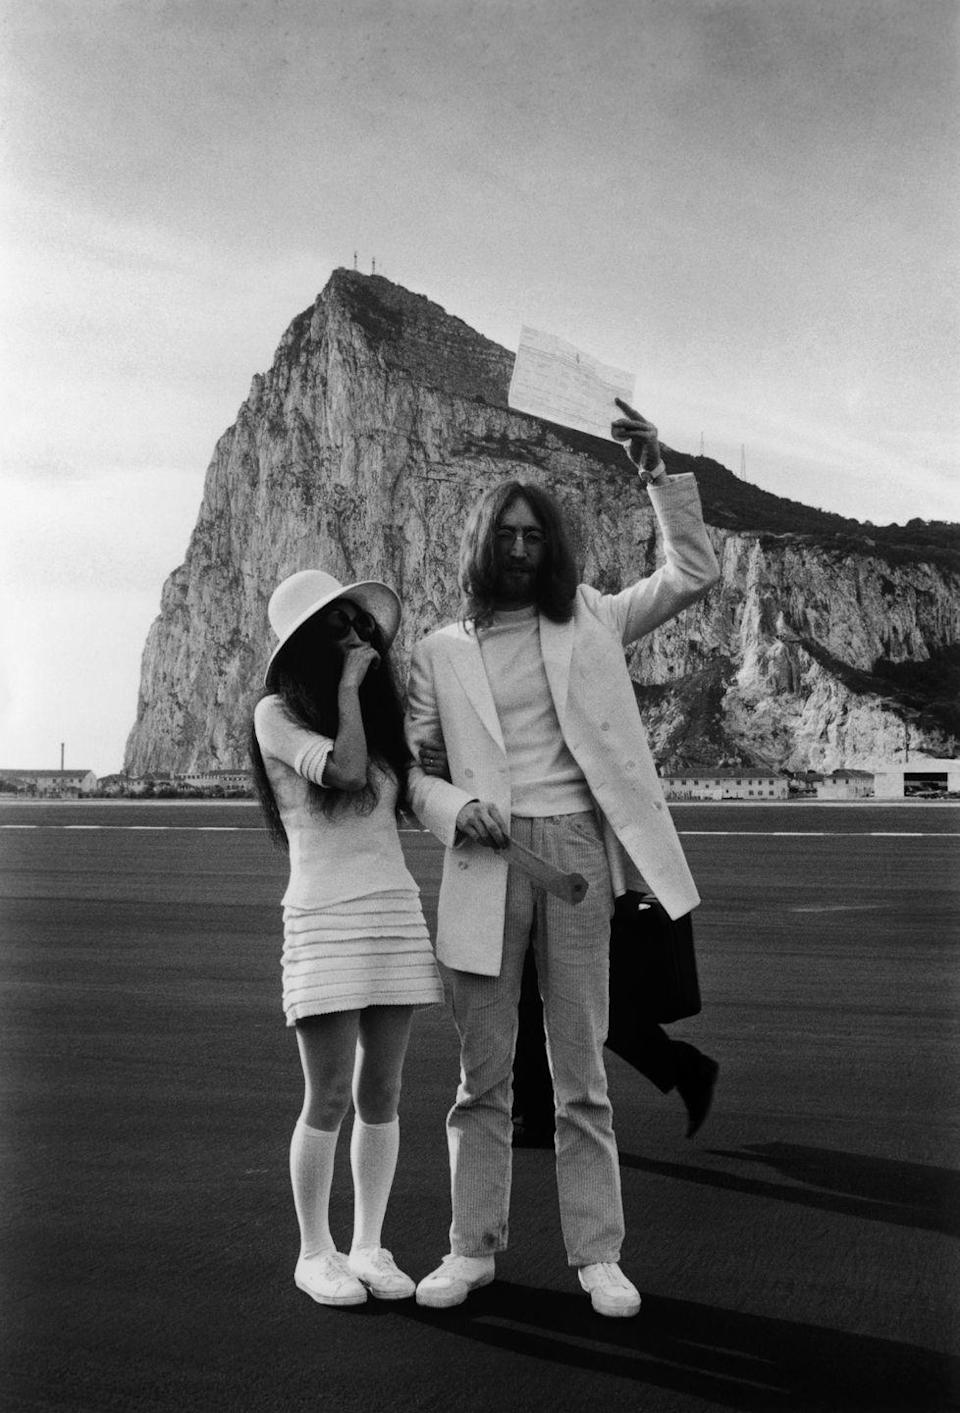 <p>With no other fanfare besides both wearing all white, John Lennon and Yoko Ono hold up their marriage certificate at the airport in Gibraltar to showcase their recent vows.</p>